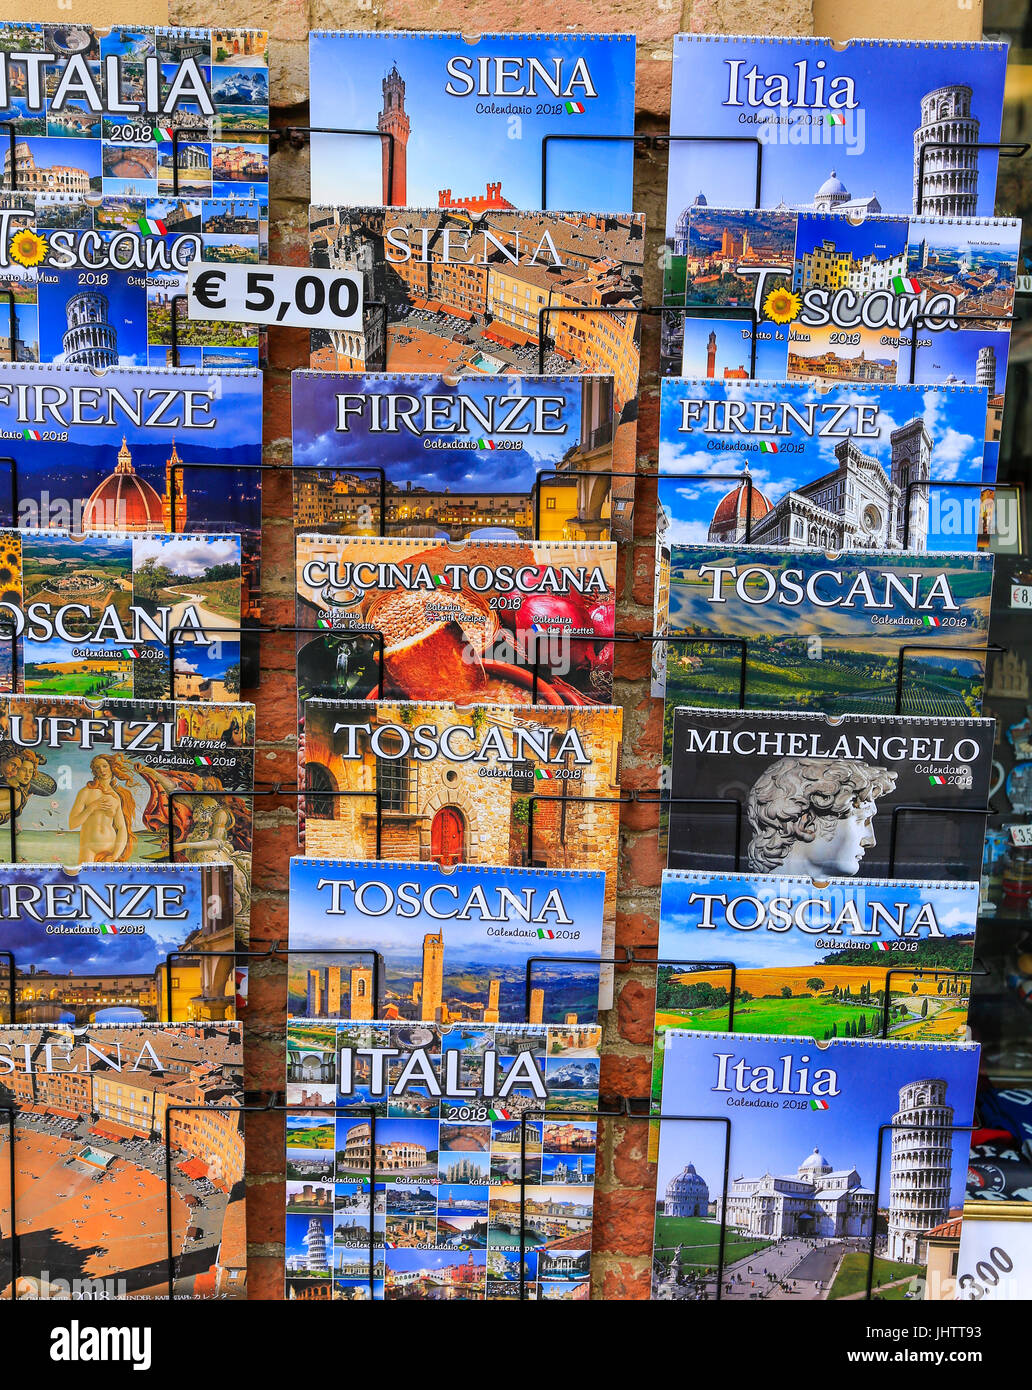 Tourist guides - Stock Image